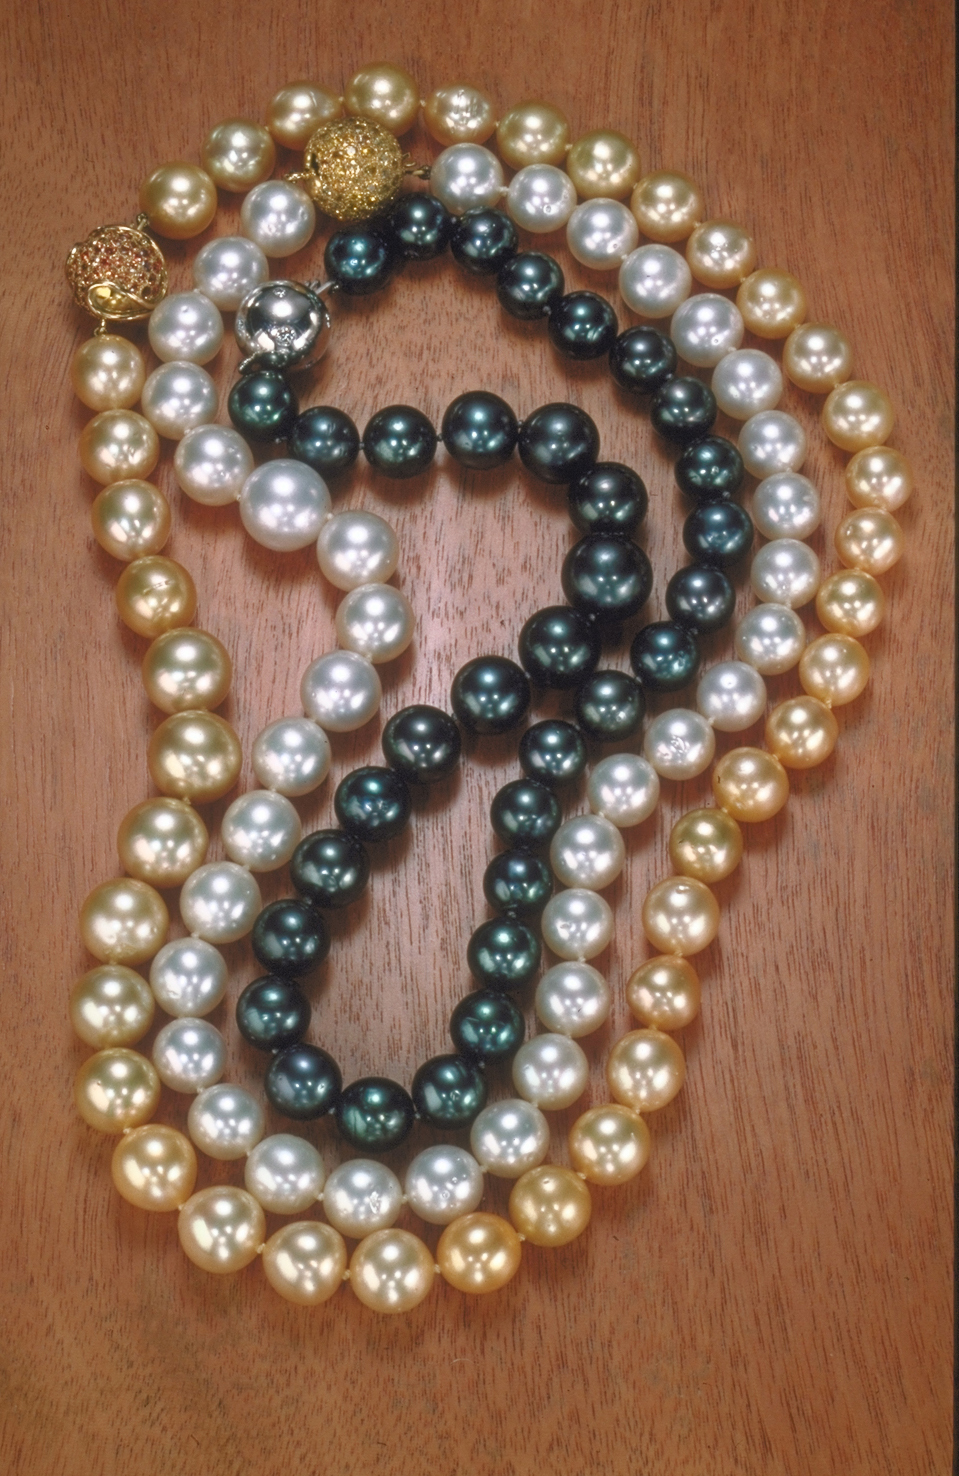 Three strands of Tahitian black, South Sea white, and gold pearls and Philippines  necklaces